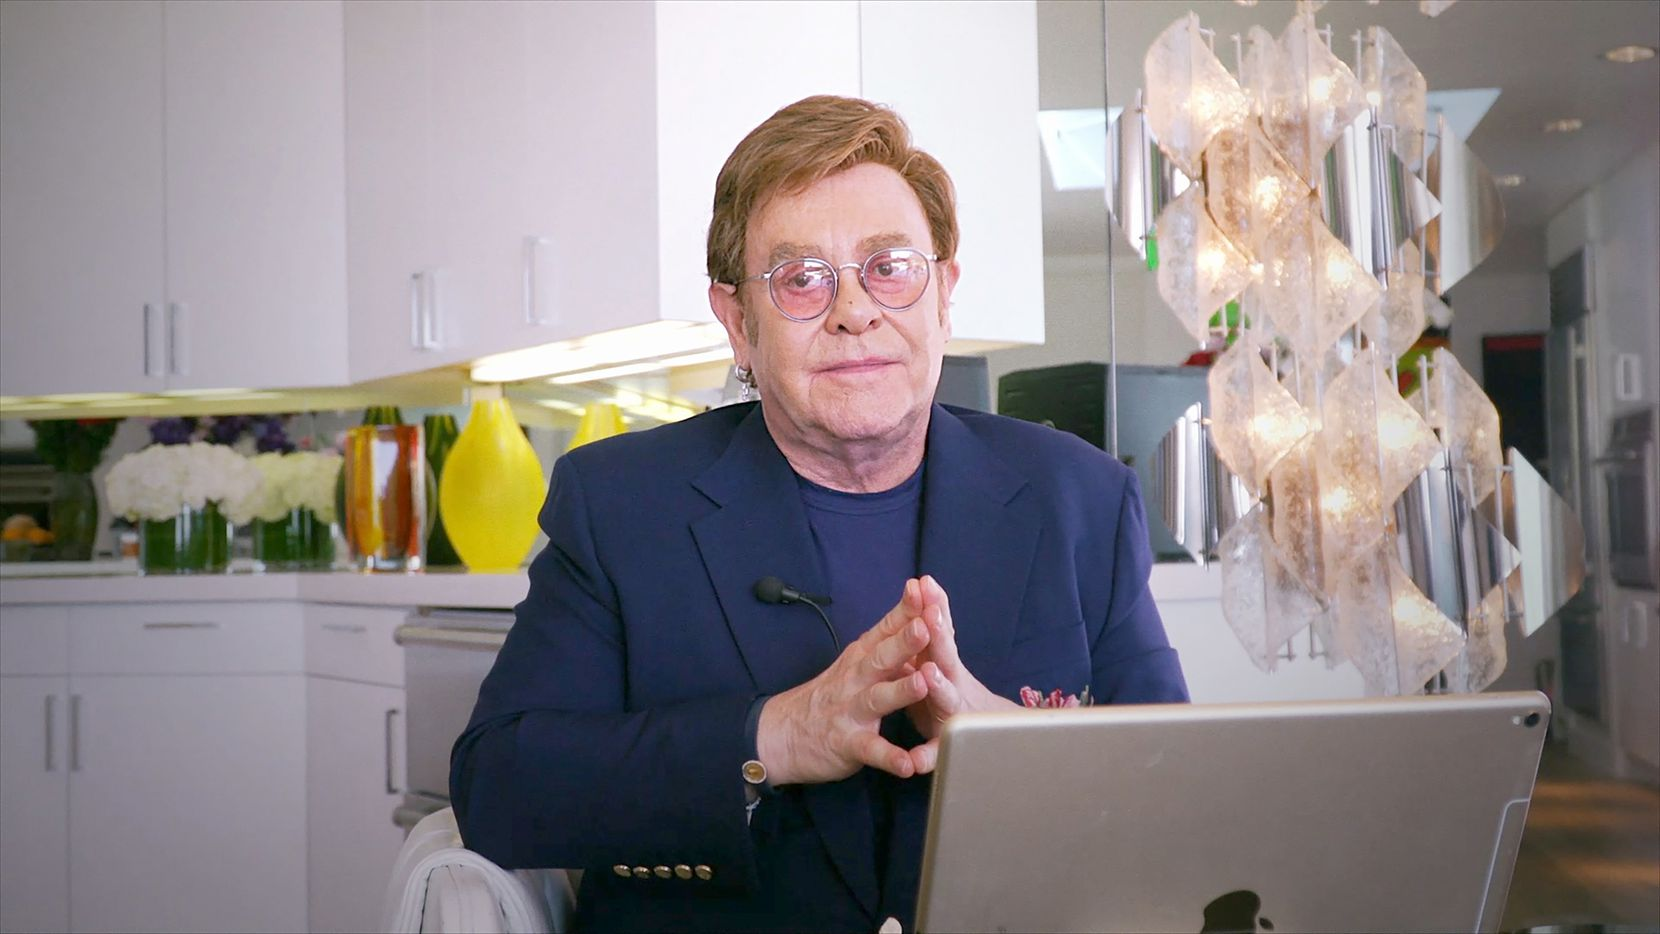 """Elton John appears during the """"Fox Presents the iHeart Living Room Concet for America,"""" a music event to provide entertainment relief and support for Americans to help fight the spread of the COVID-19 virus."""